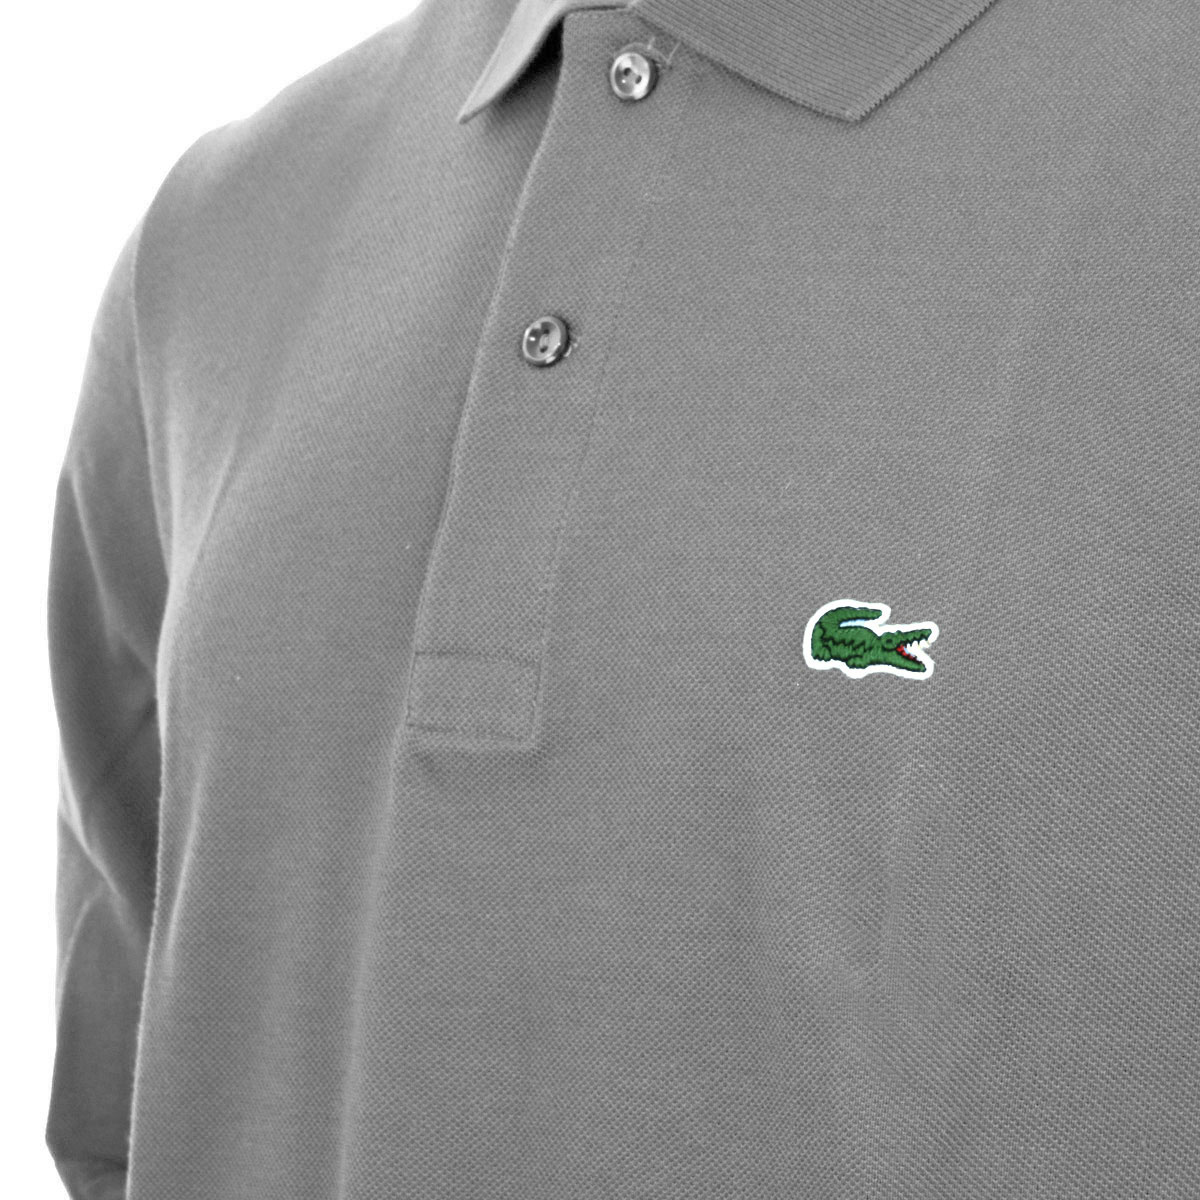 aed920ef Lacoste 2017 Mens Classic Cotton Long Sleeve L1312 Polo Shirt | eBay